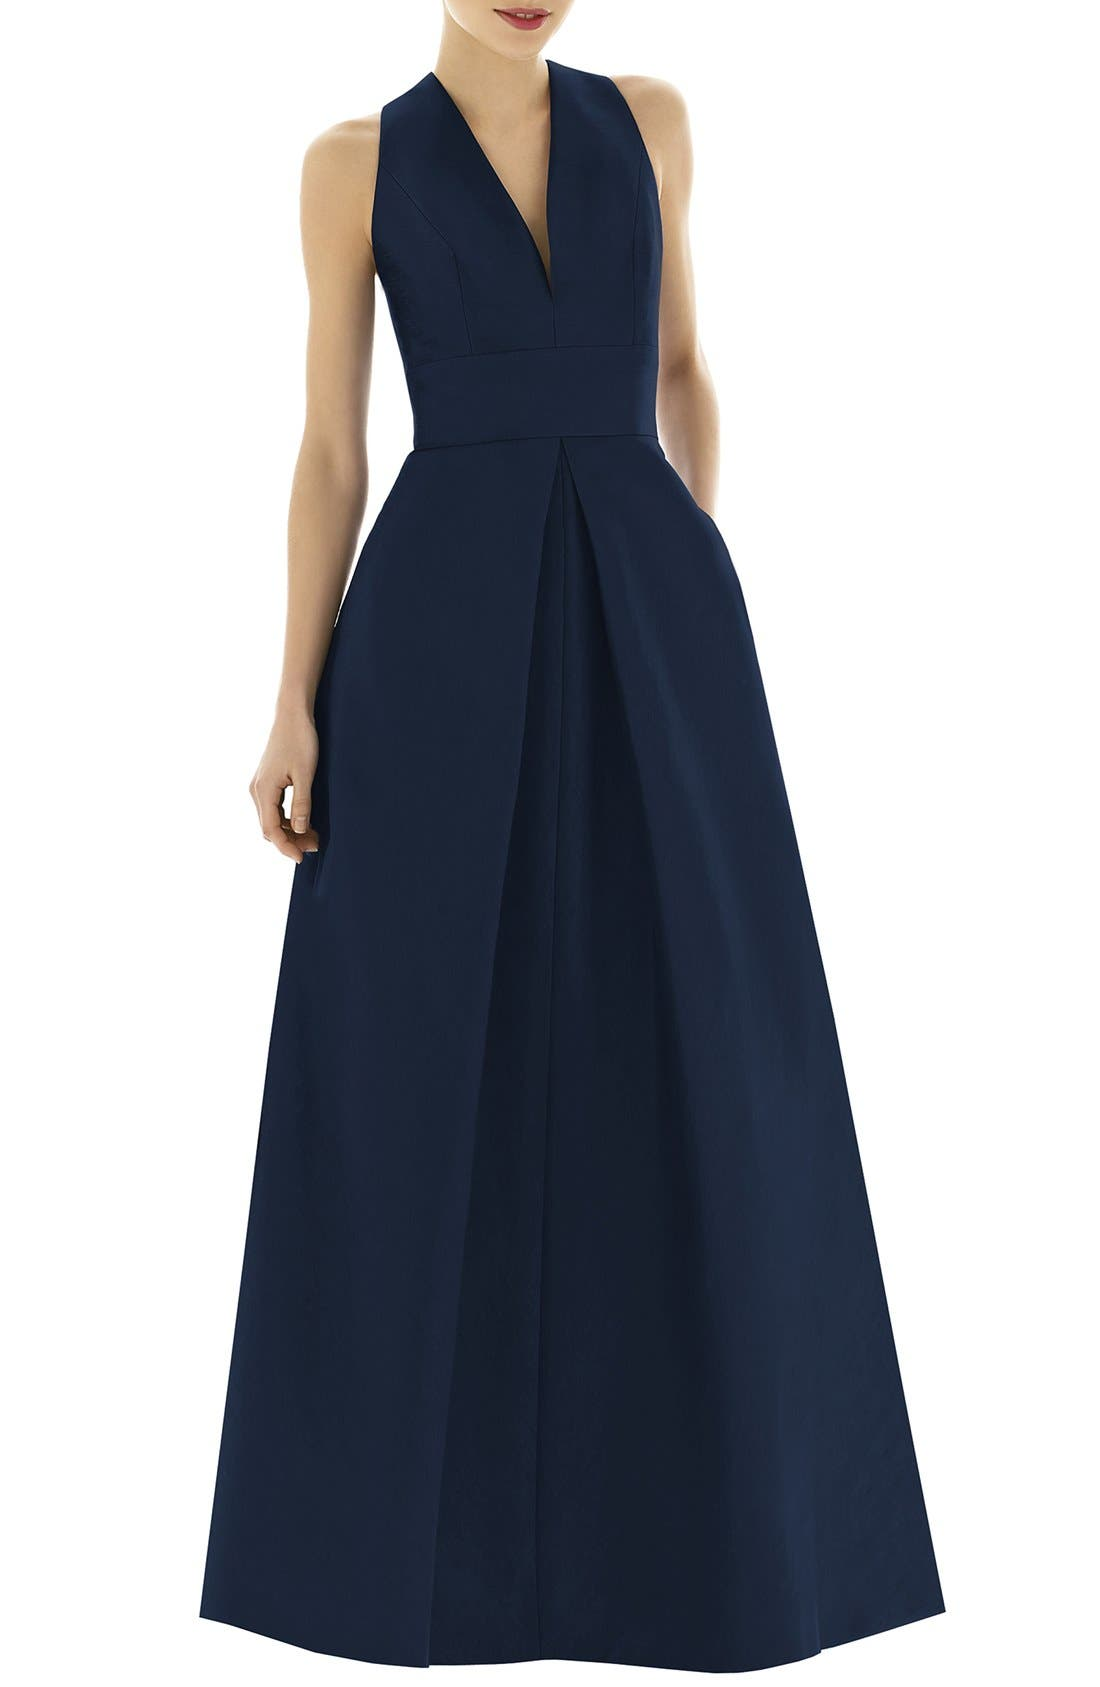 6f8334dc46707 Women's Bridesmaid Dresses | Nordstrom